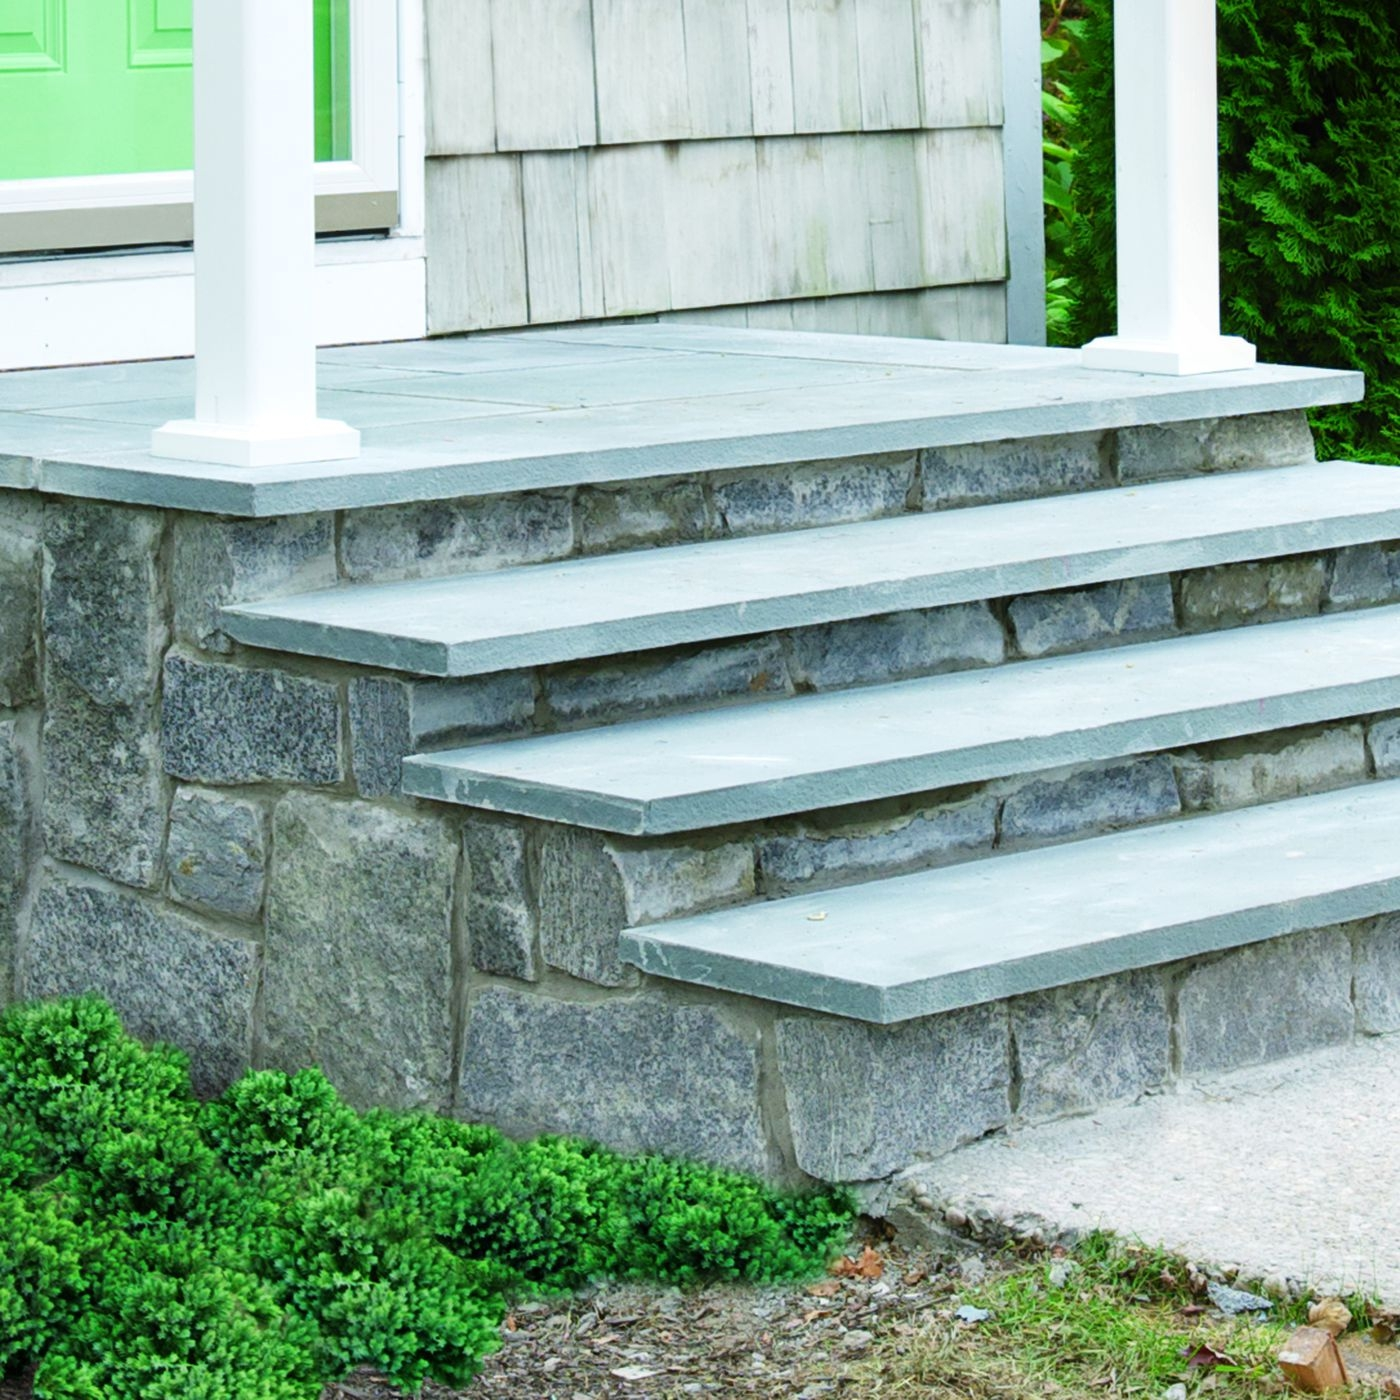 How To Clad Concrete Steps In Stone This Old House   Outdoor Railings For Stone Steps   Screen Porch   Modern Outdoor   Backyard   Stone Patio   Fancy